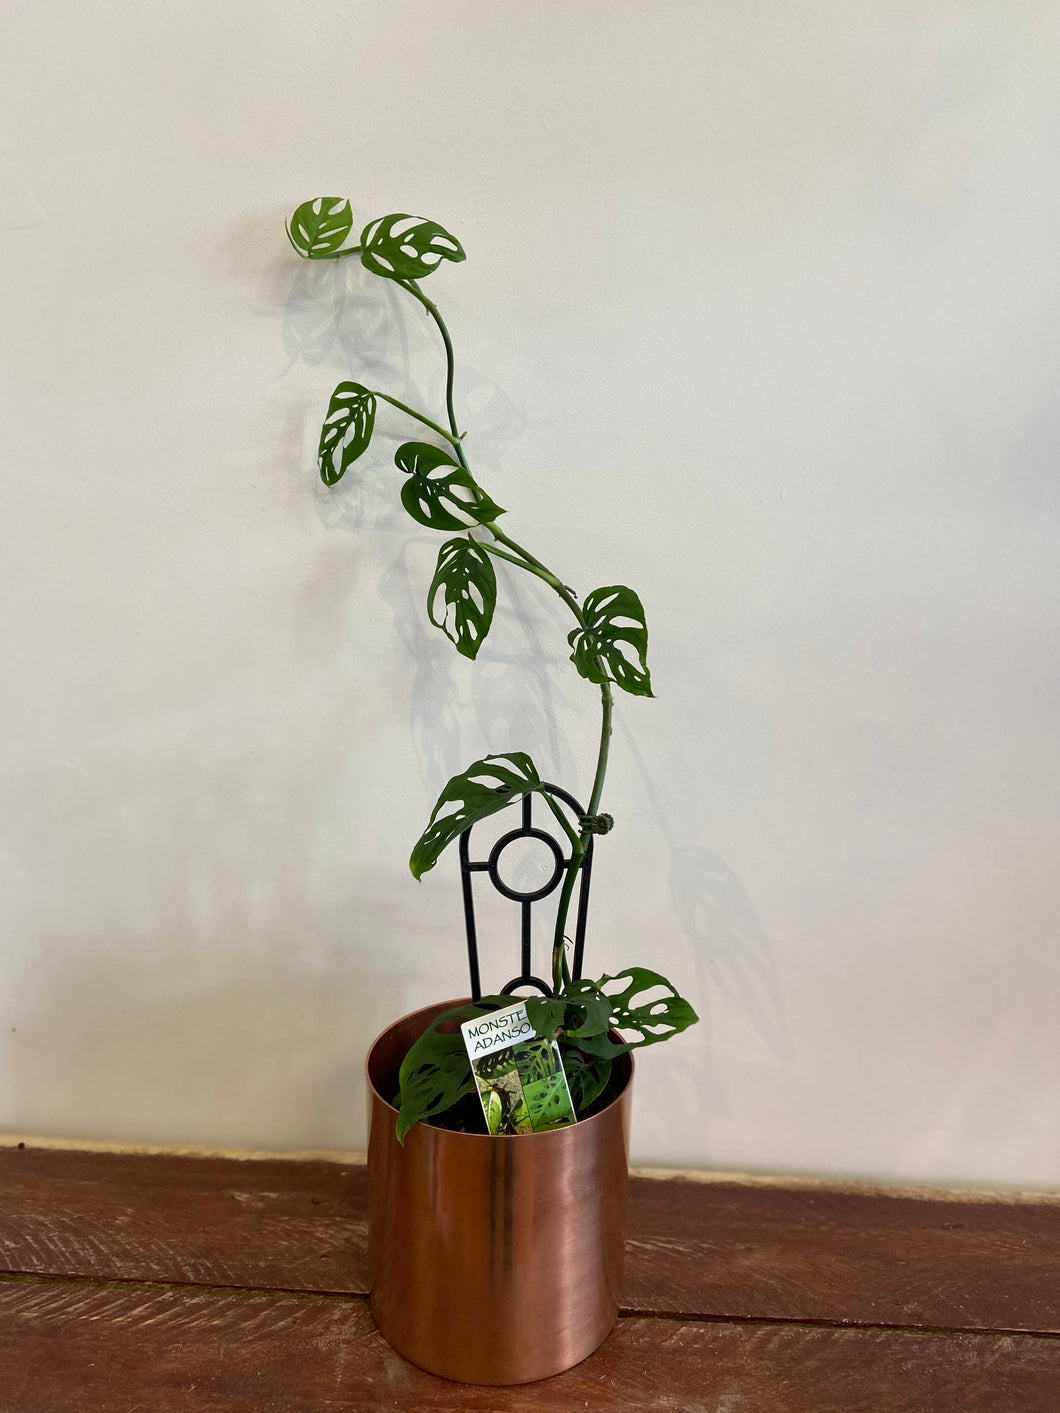 Swiss Cheese trailing plant